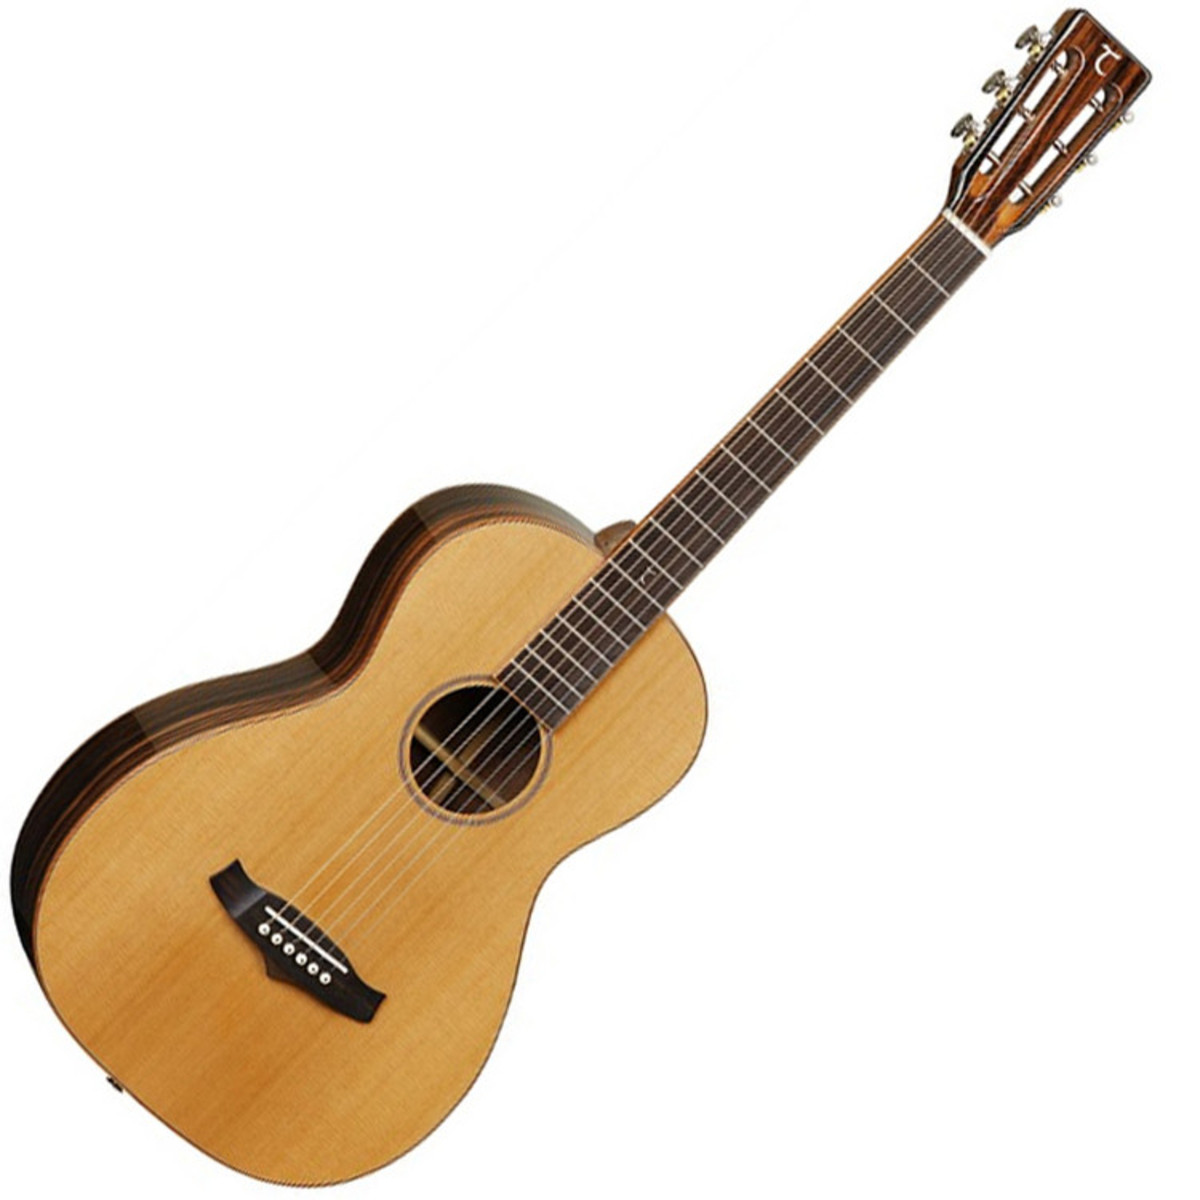 Tanglewood twjpe java electro acoustic guitar nearly new for The tanglewood